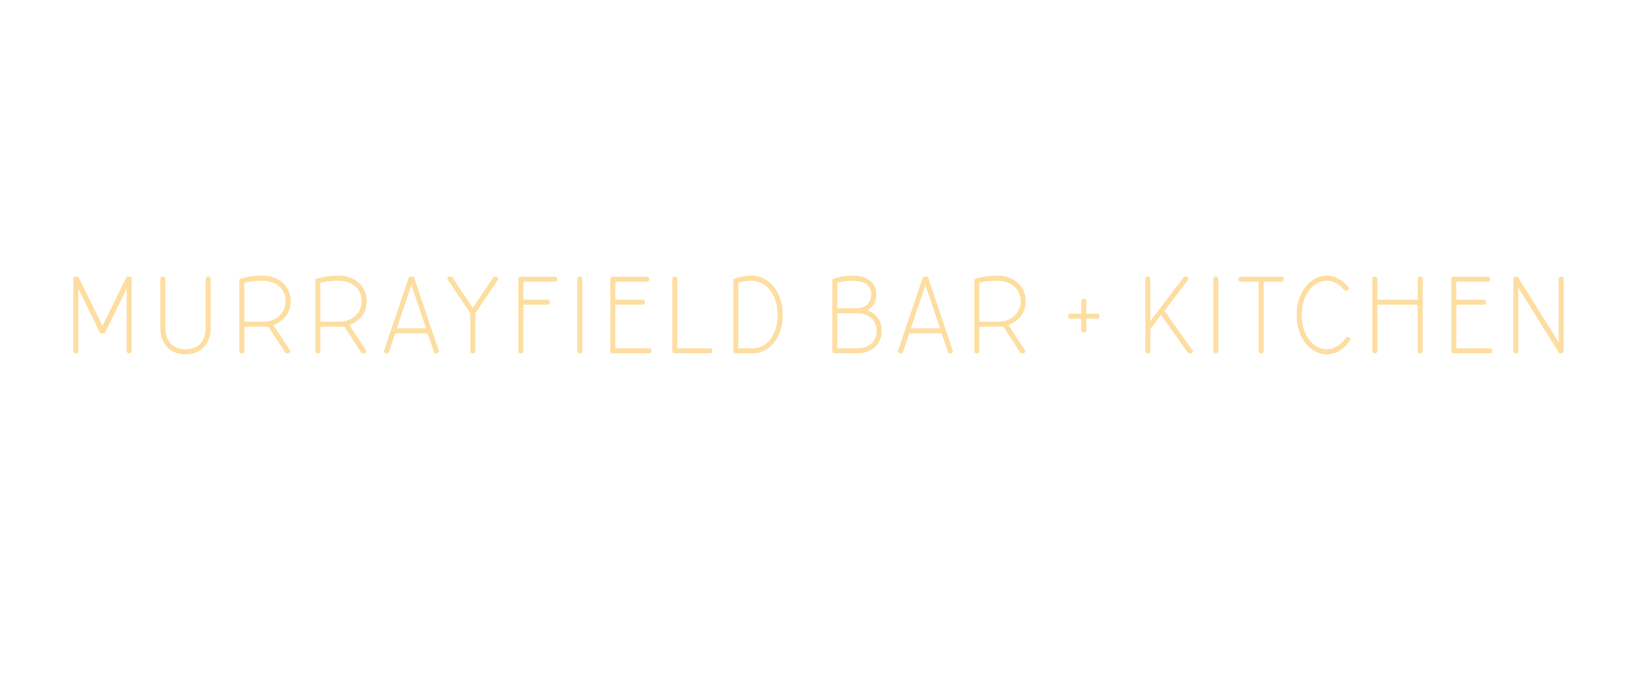 Murrayfield Bar + Kitchen